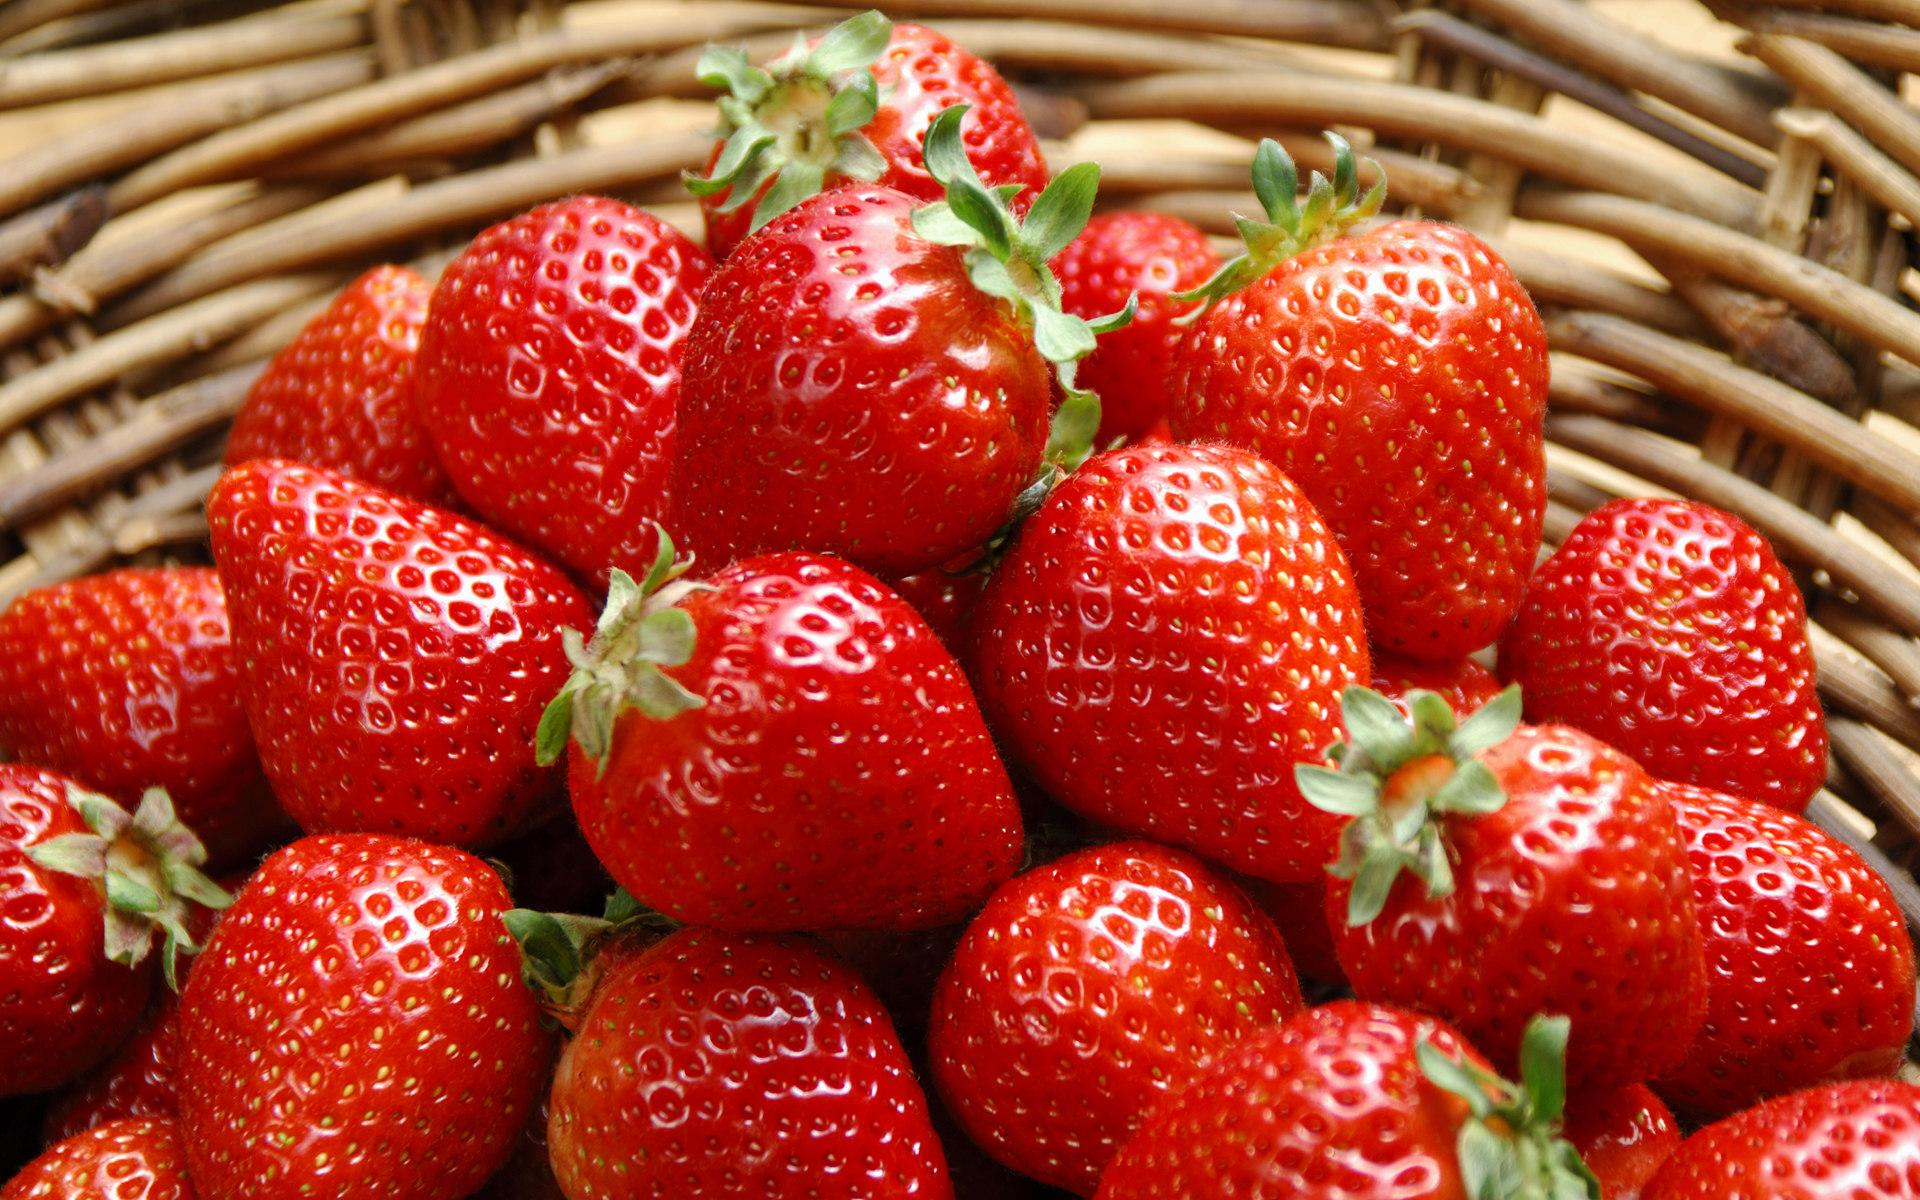 Hydroponic strawberries: how to grow them at home